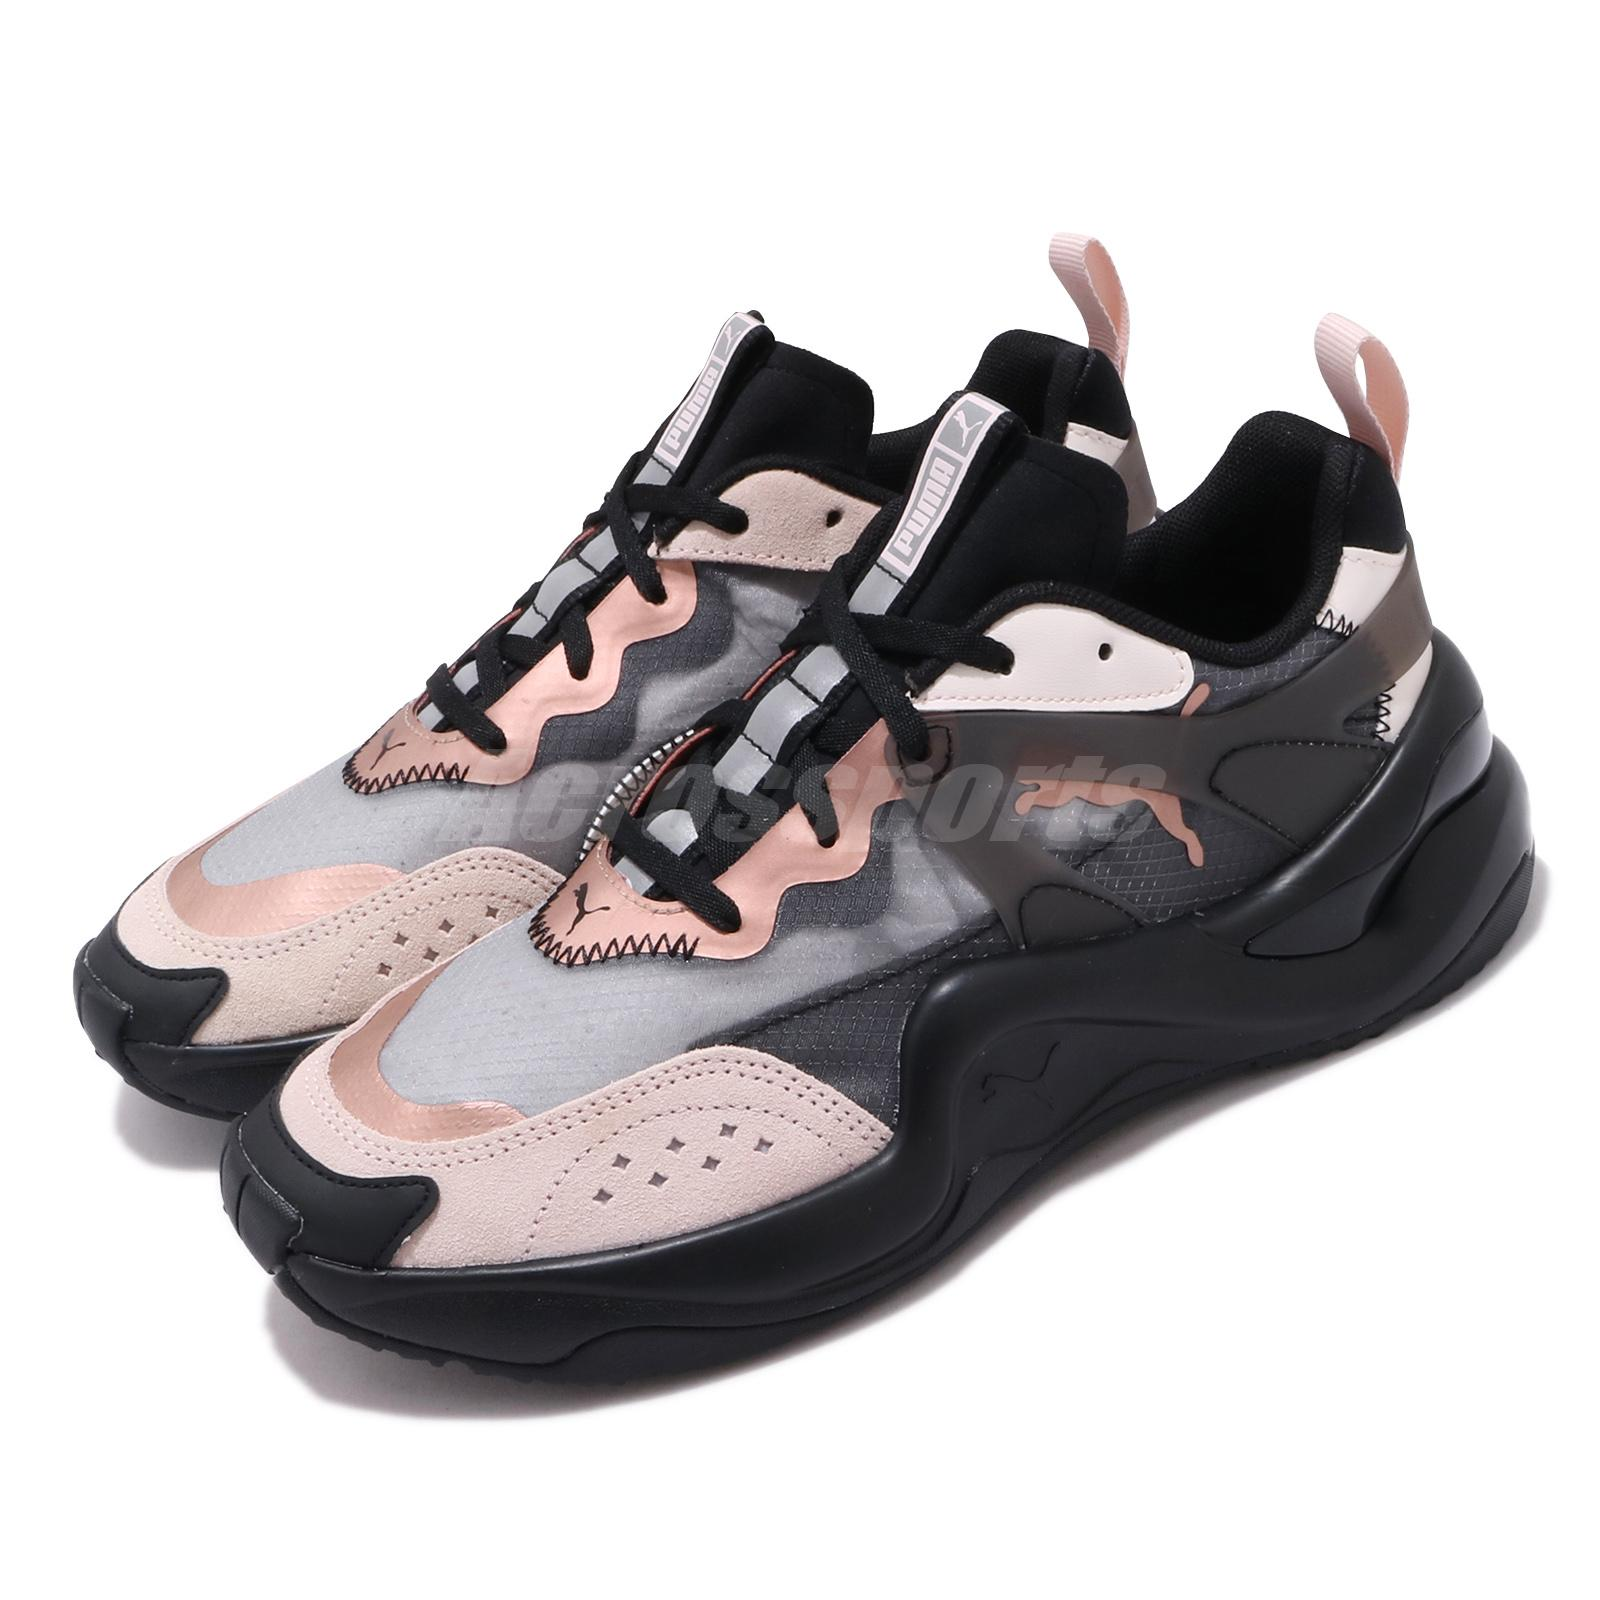 Details about Puma Rise Wns Black Rosewater Pink Womens Lifestyle Casual  Shoes 371777-03